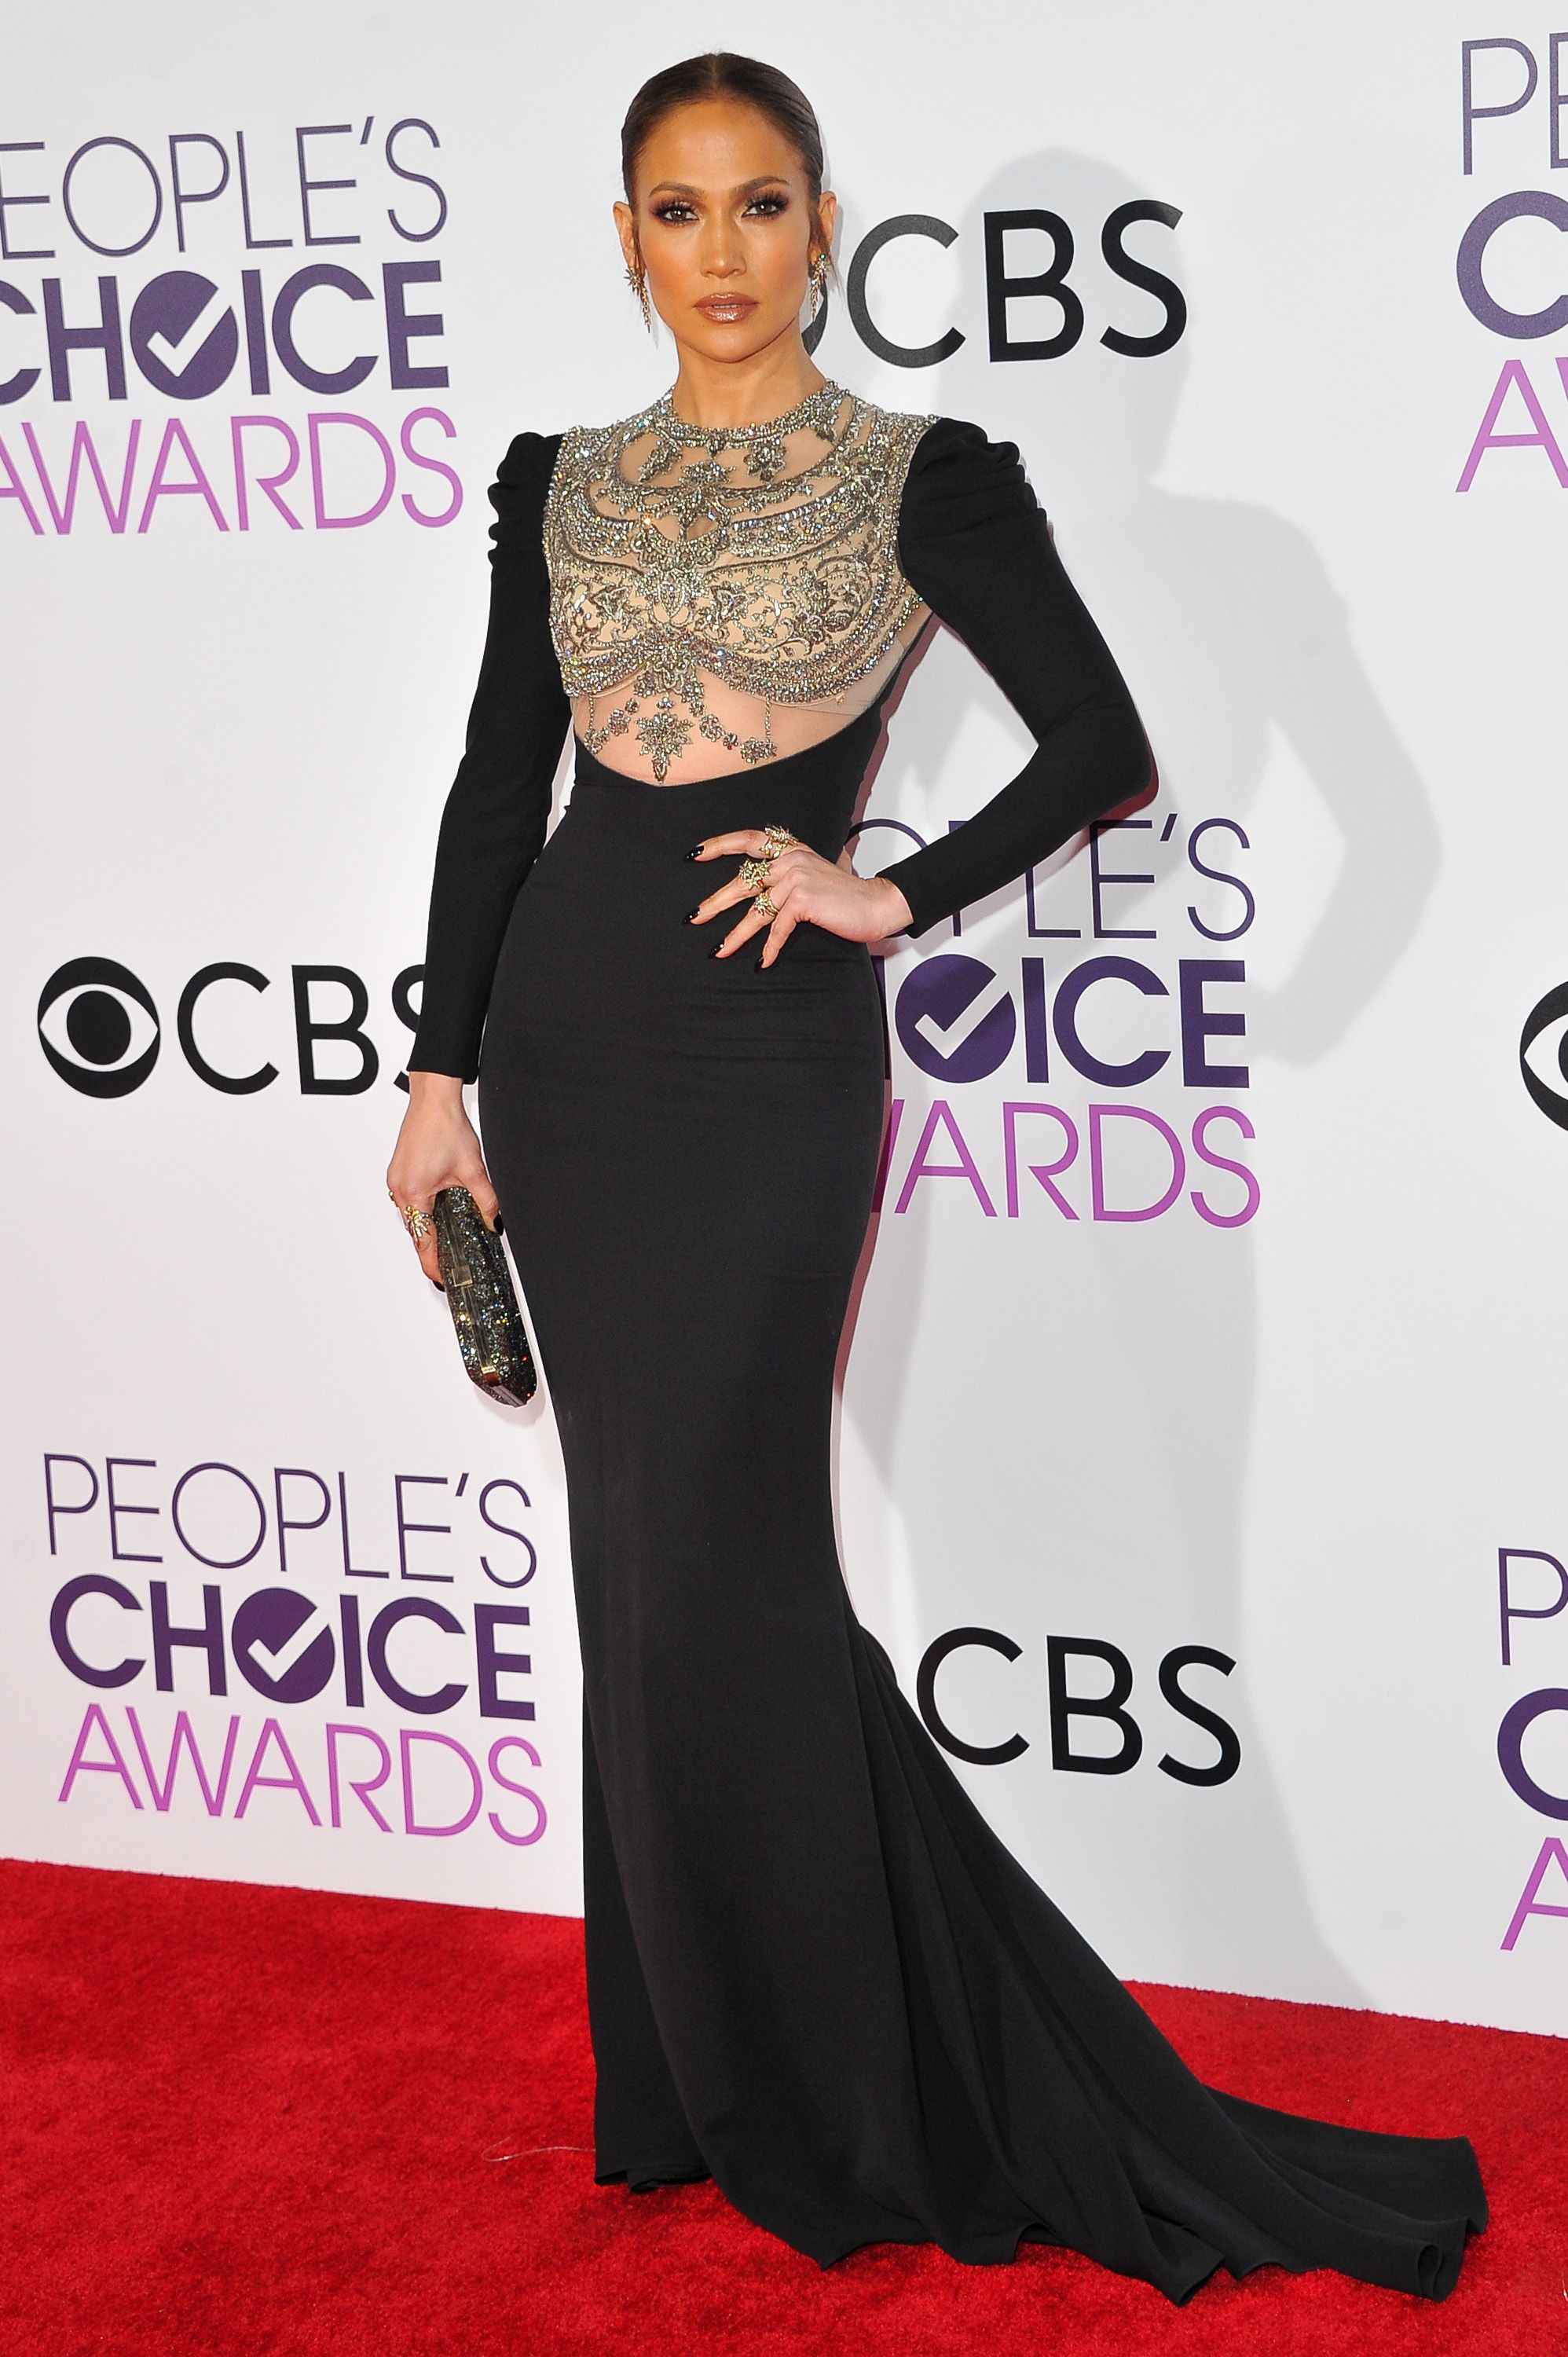 The Hottest Red Carpet Moments At The 2019 People's Choice Awards The Hottest Red Carpet Moments At The 2019 People's Choice Awards new images